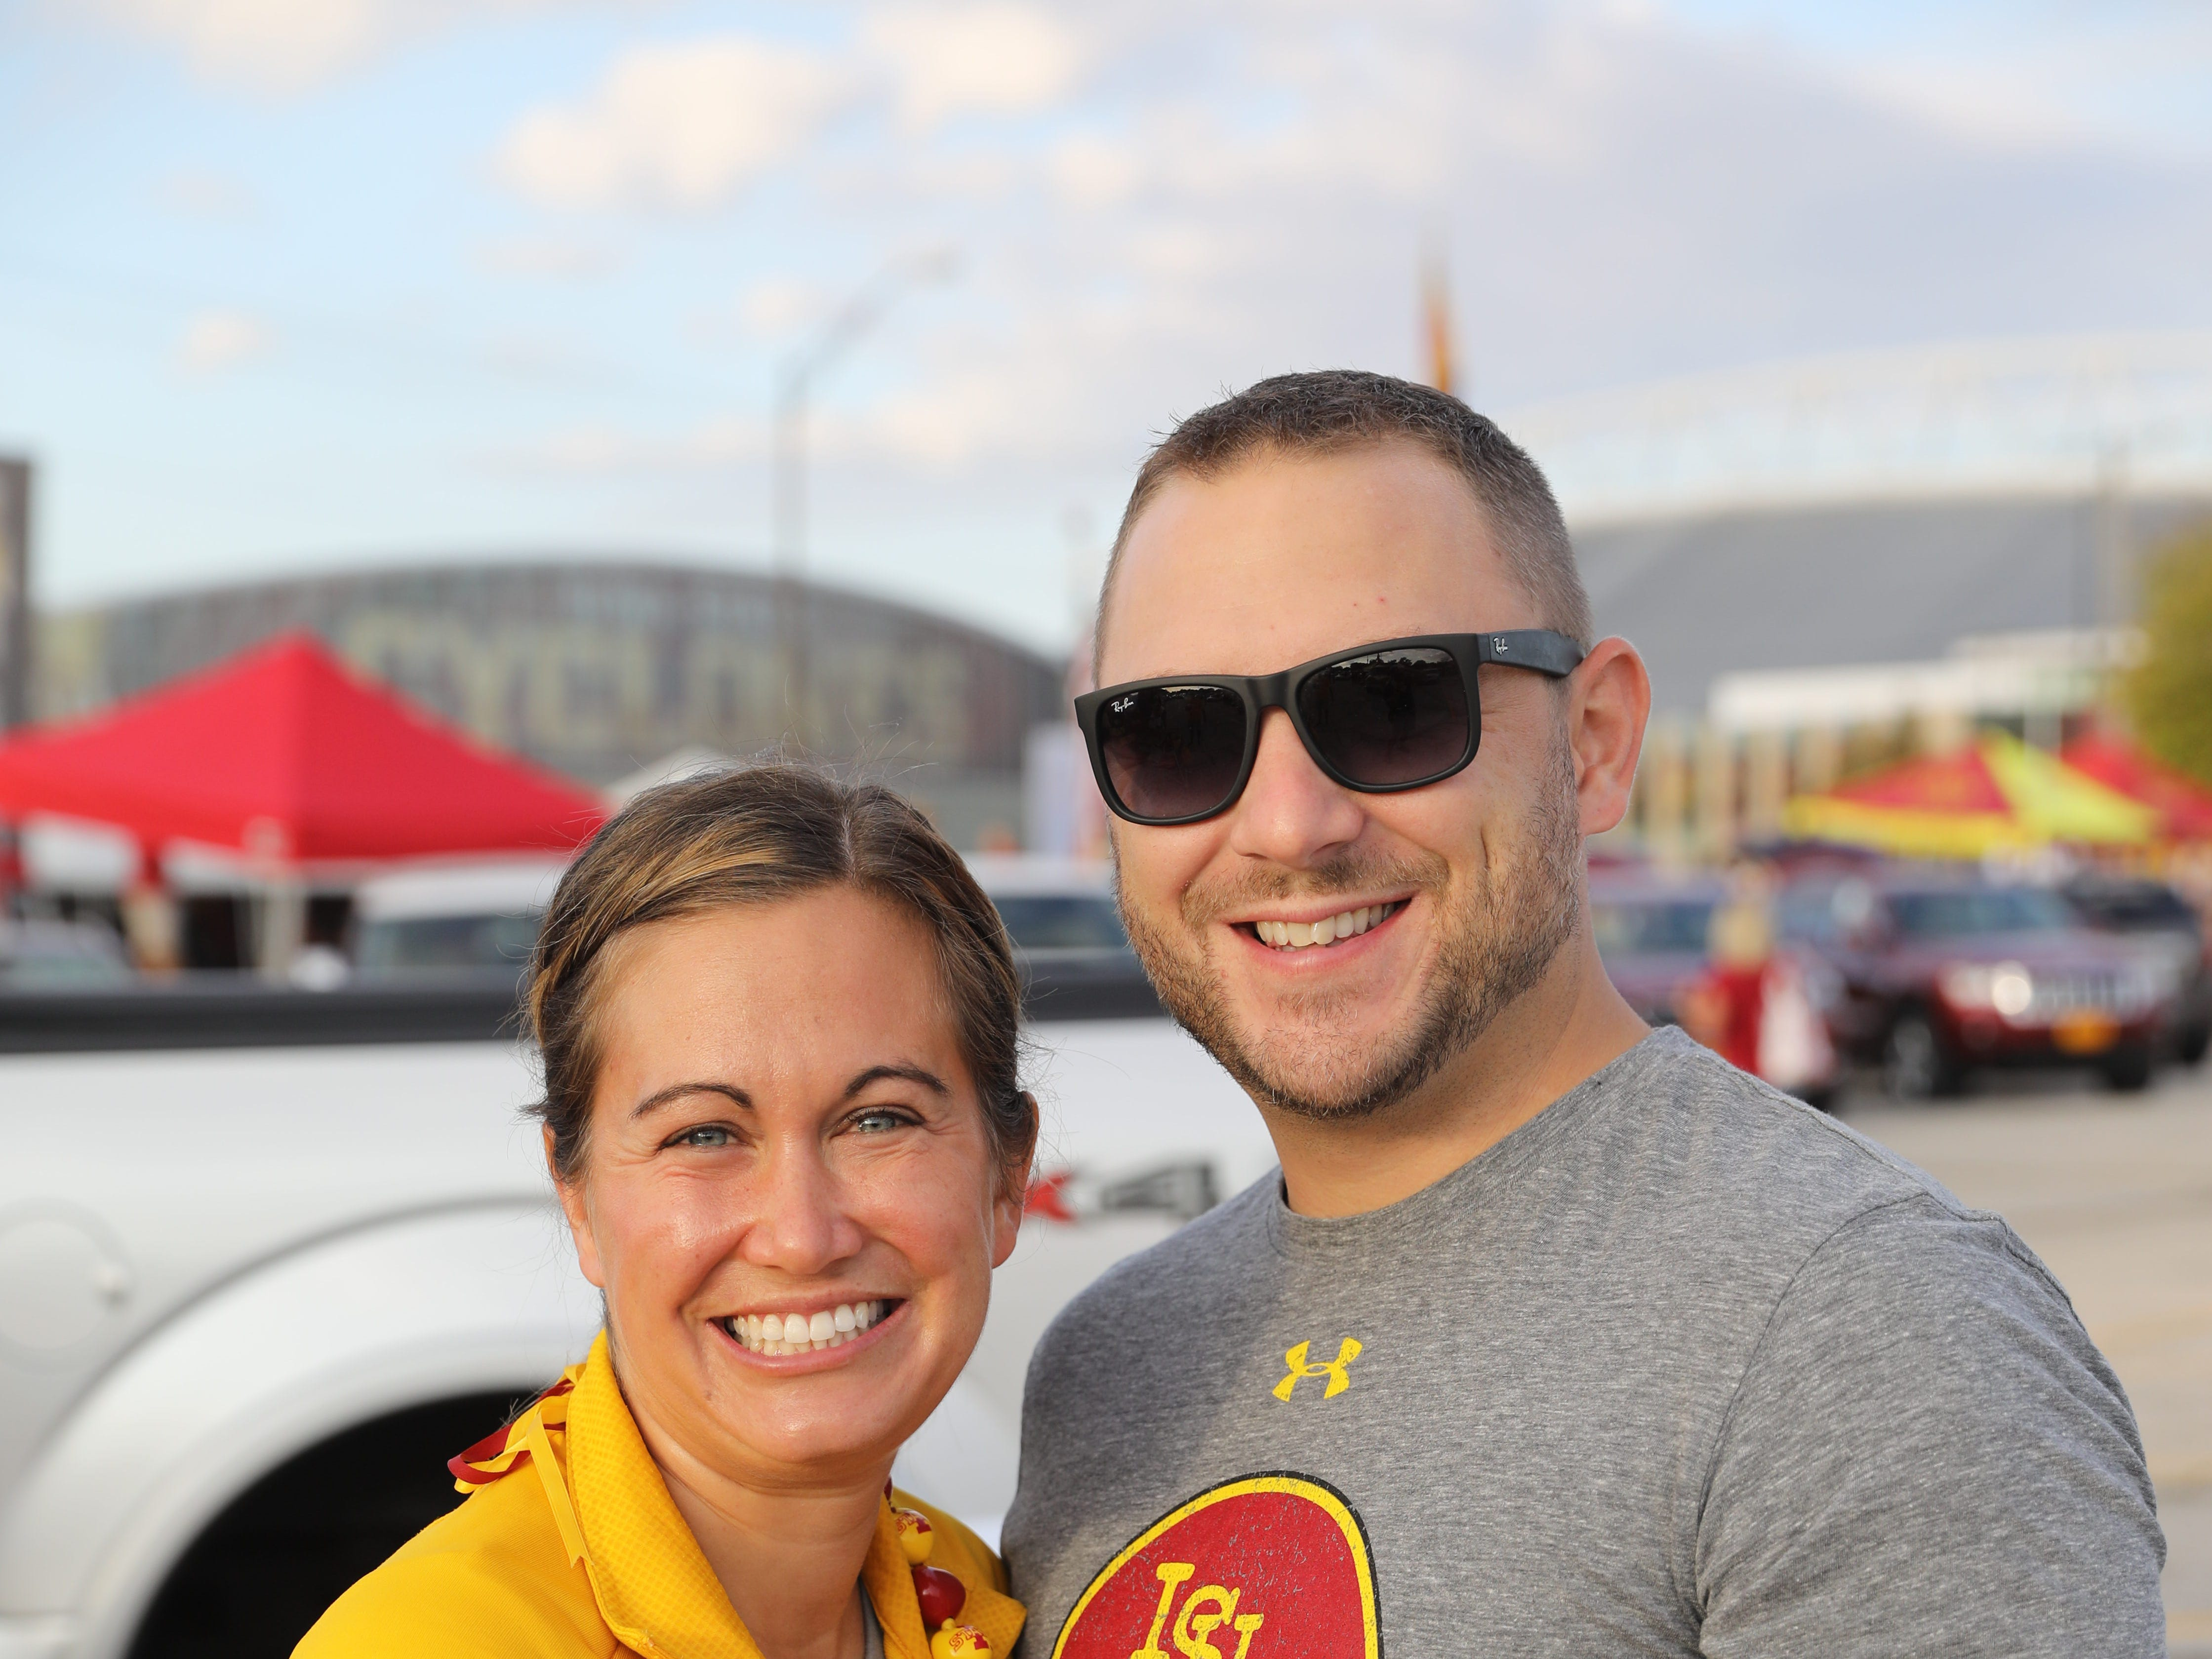 Elyse Rees and James LeBlanc, both of West Des Moines, Saturday, Sept. 15, 2018, before the Iowa State football game against Oklahoma in Ames.